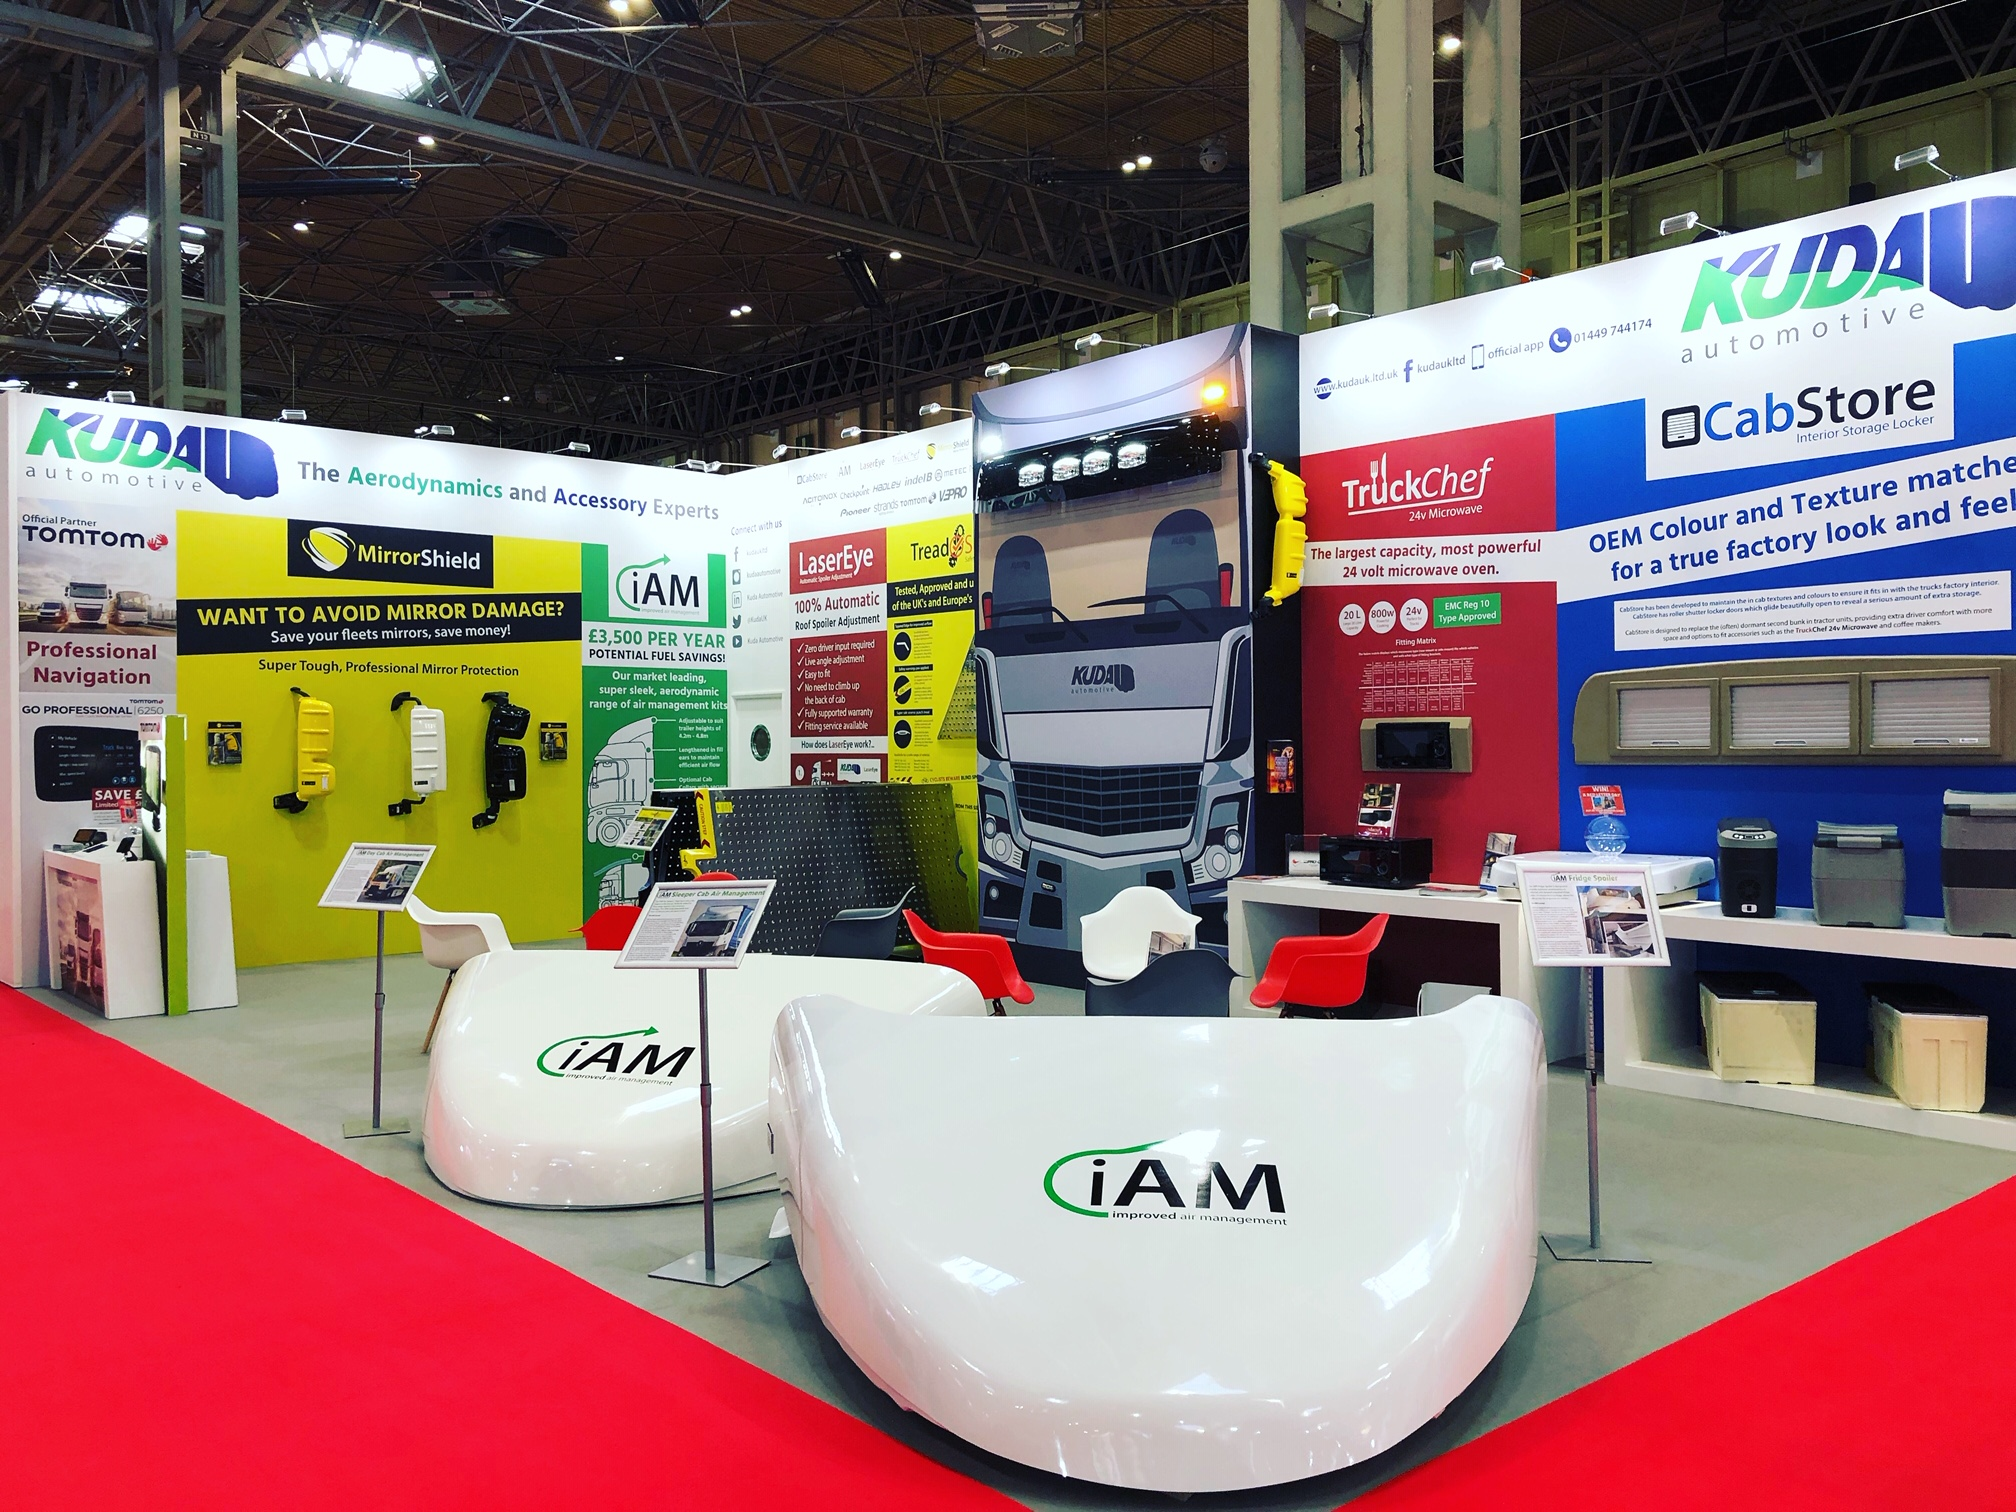 Kuda Exhibition Stand Design case study